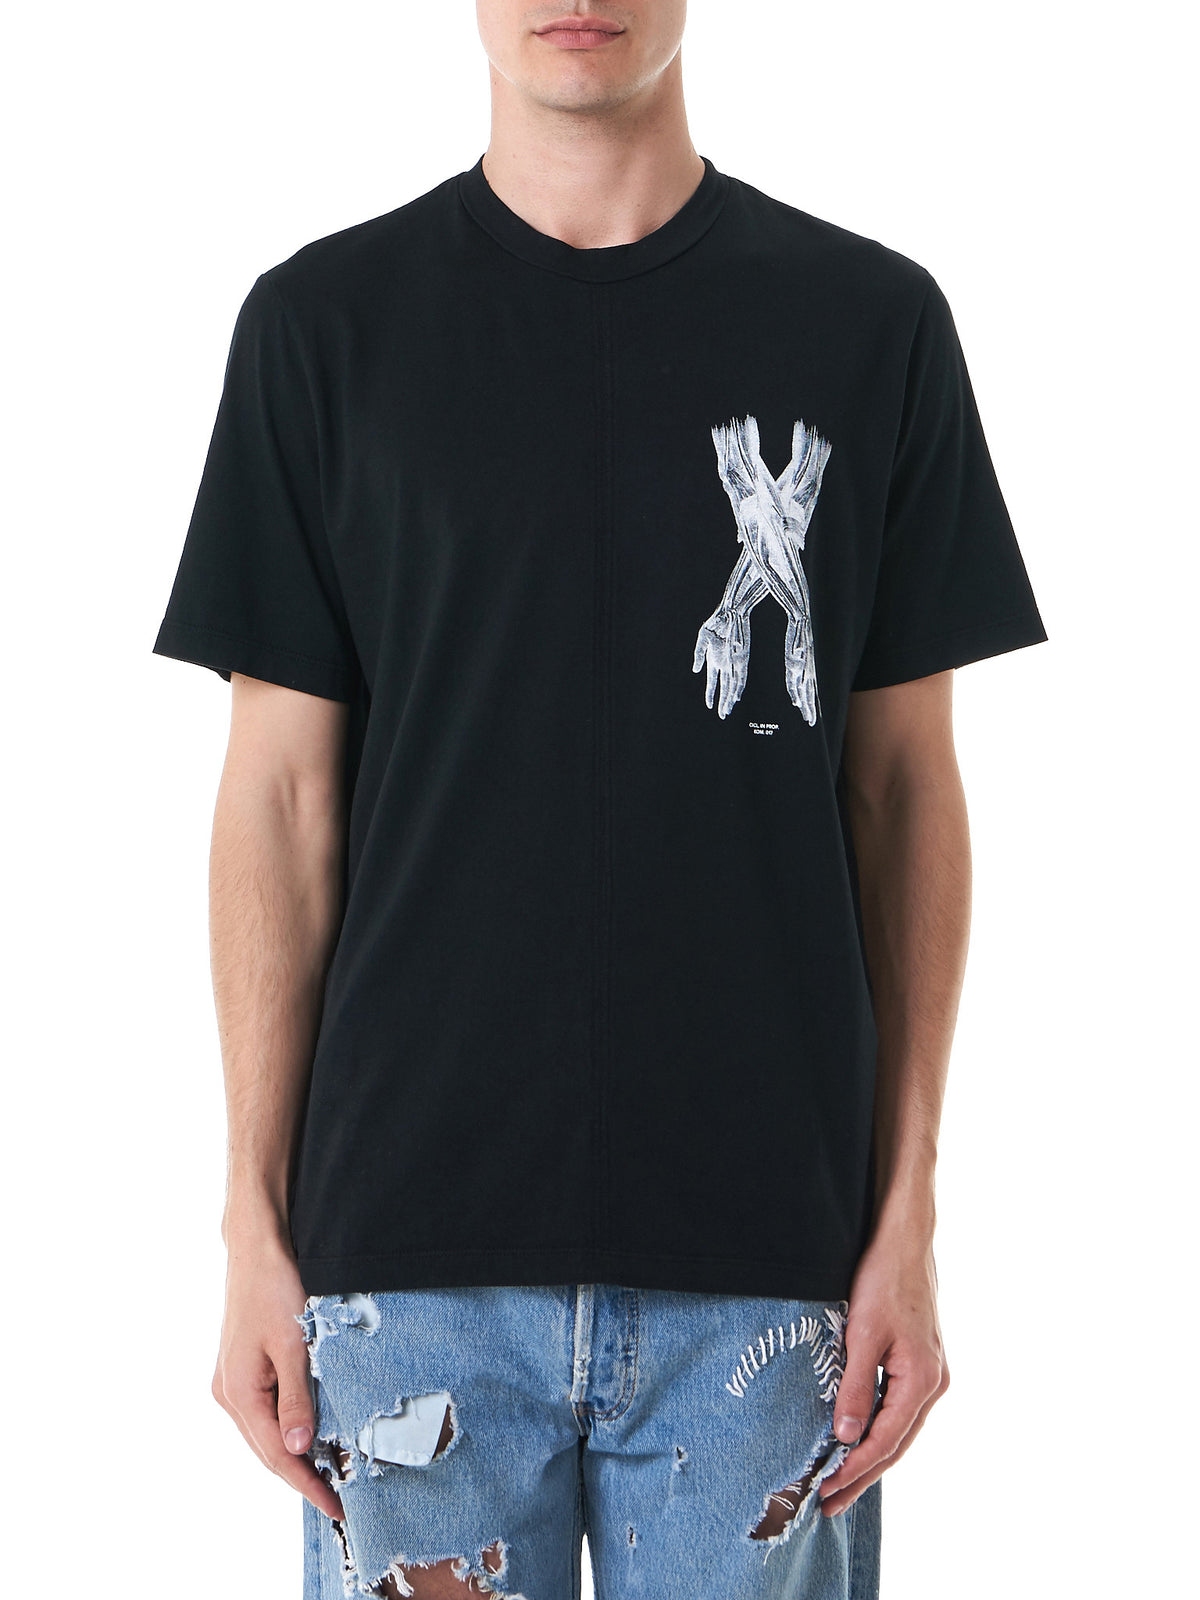 Box-Fit Graphic Tee (153-BK-BLACK) - H. Lorenzo